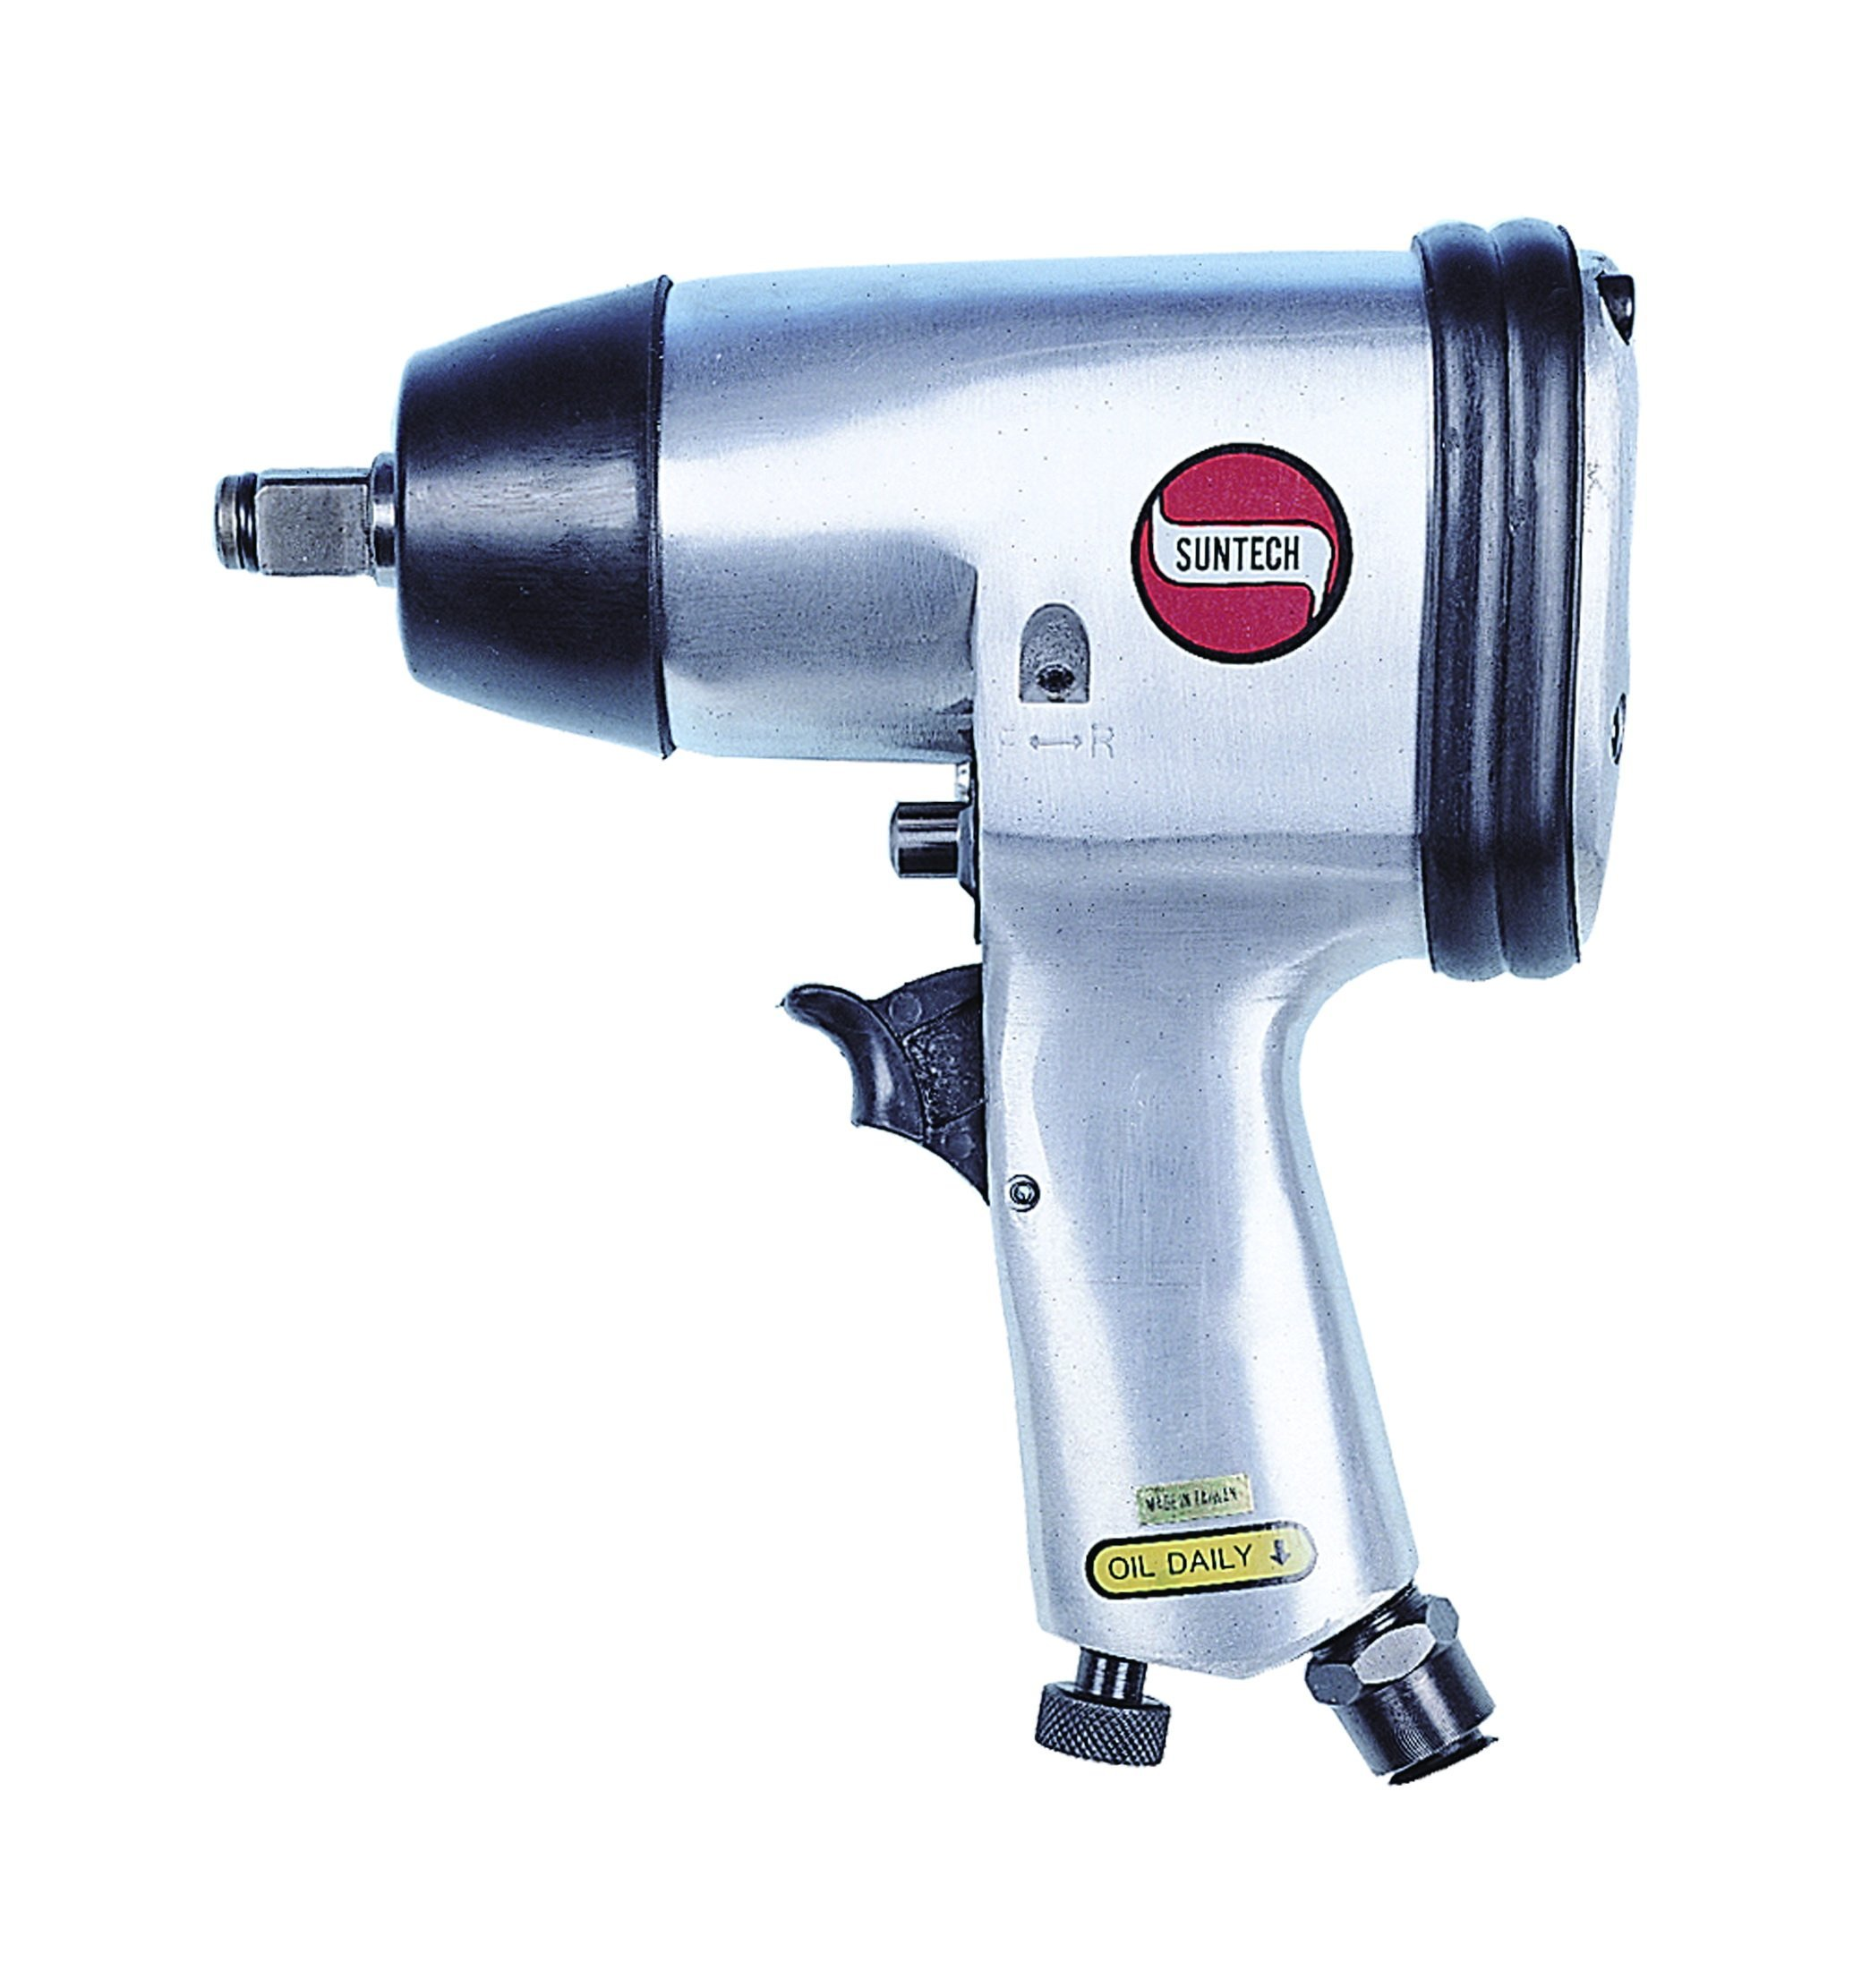 SUNTECH SM-403 Air Impact Wrench with Single Hammer, Silver, 1/2''